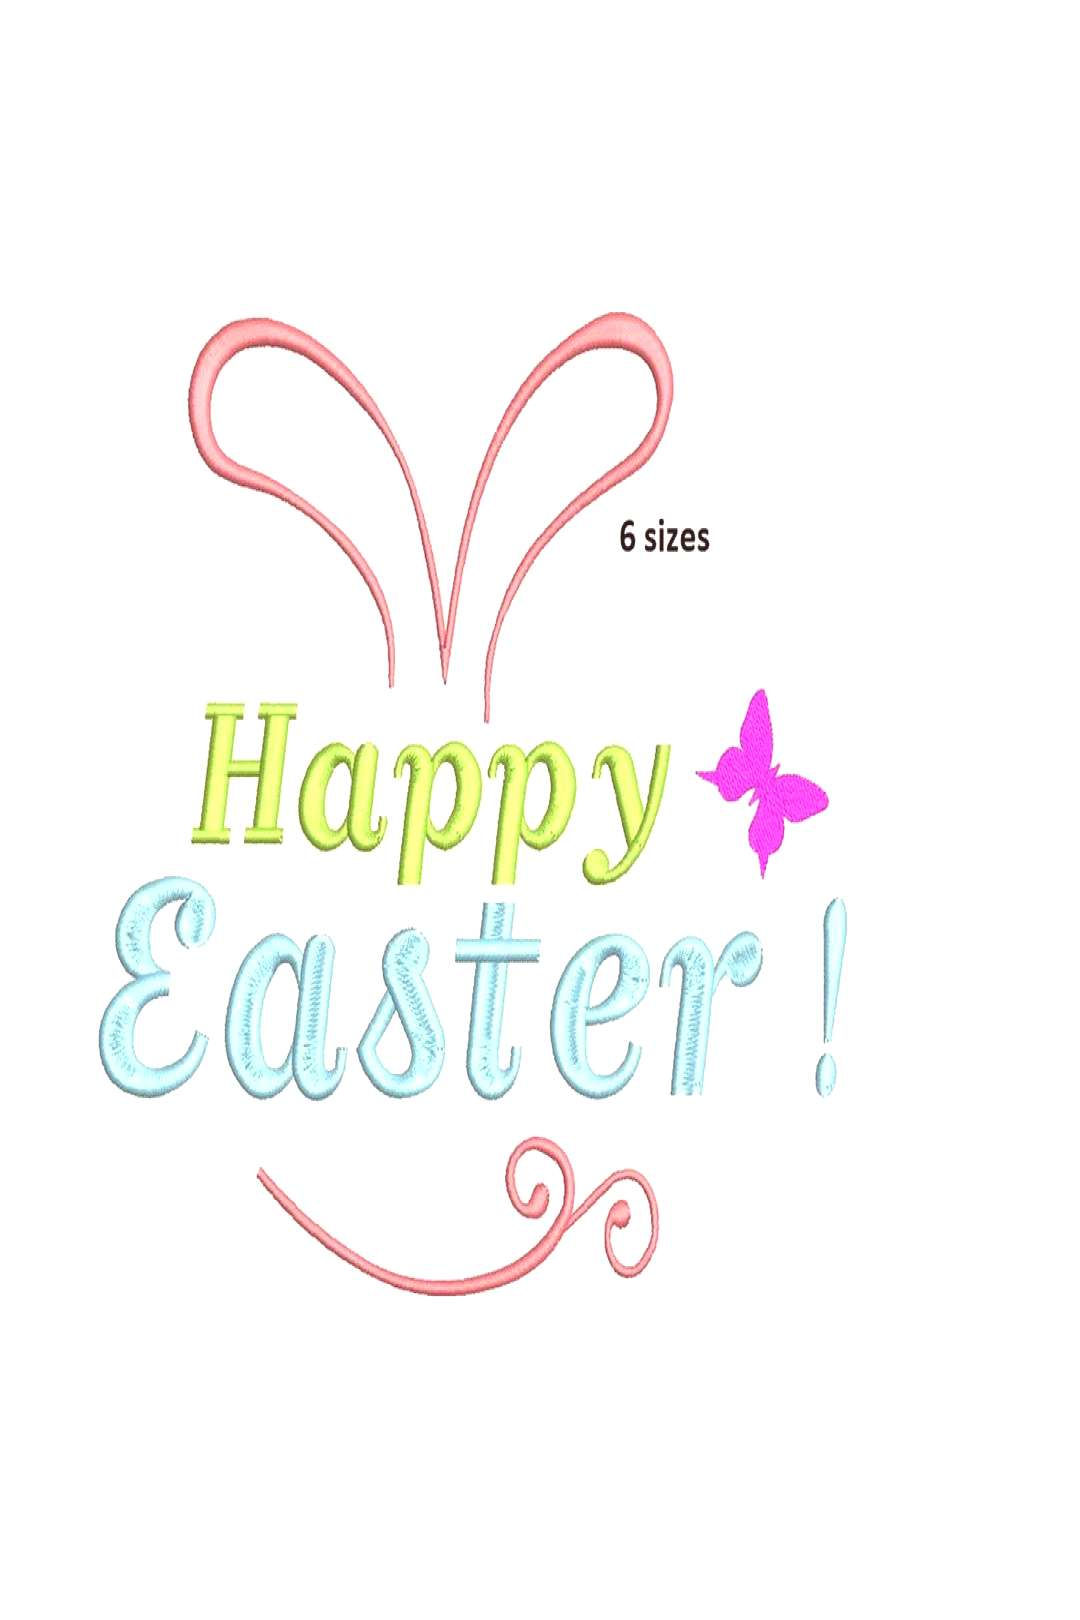 text that says 'sizes Happy Easter!'